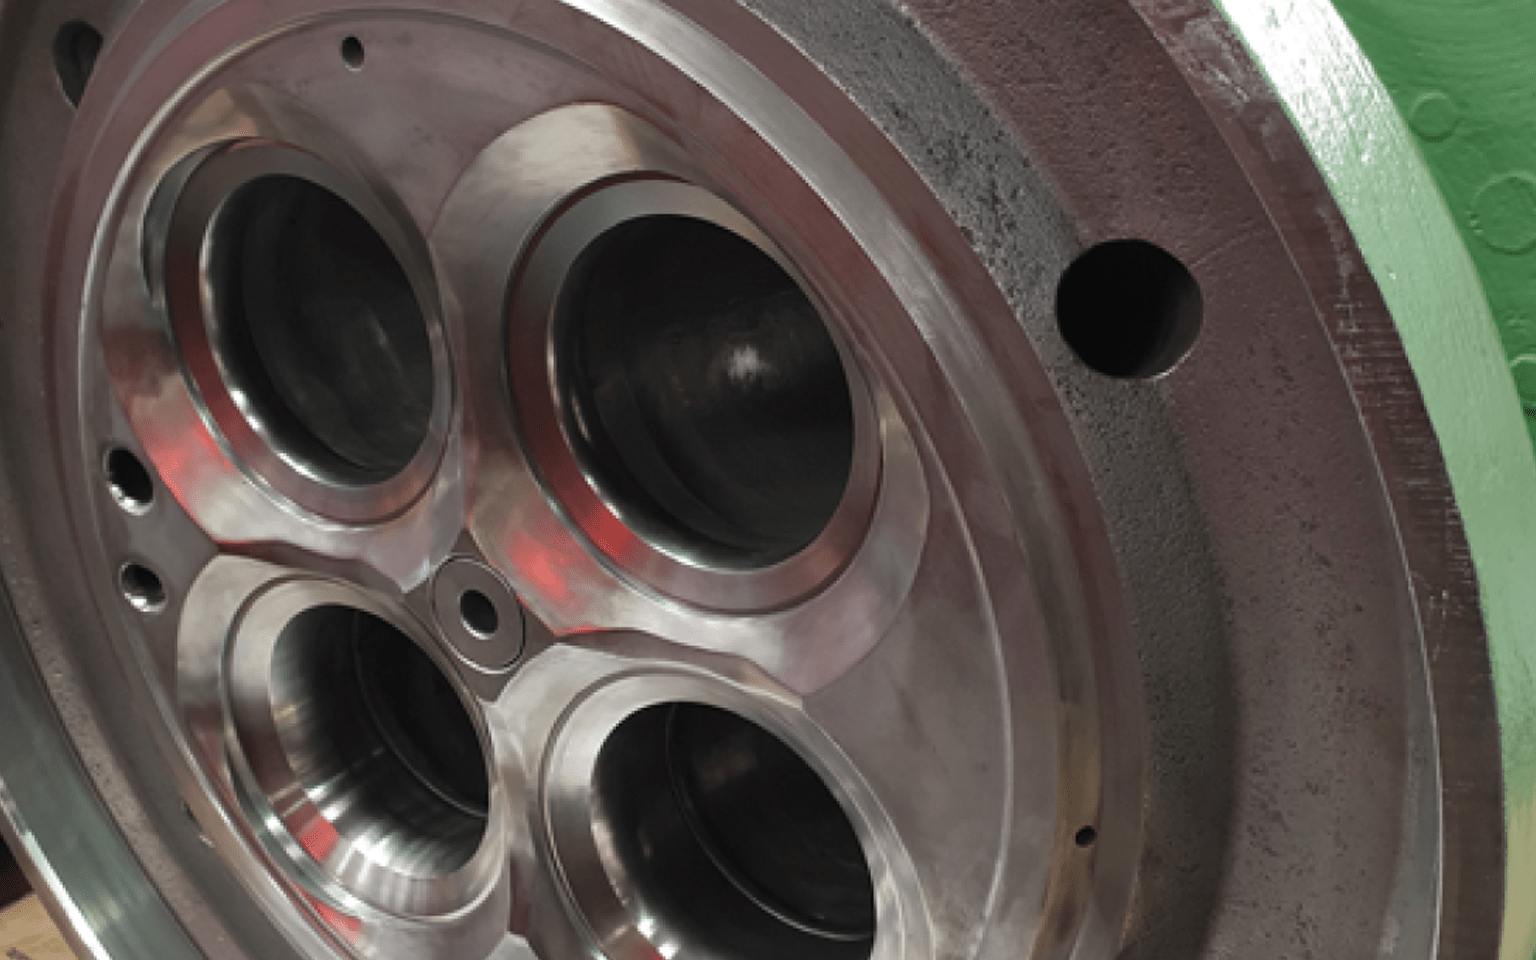 Wartsila Cylinder Head Valve Seat pockets after repair from Cast Iron Welding Services